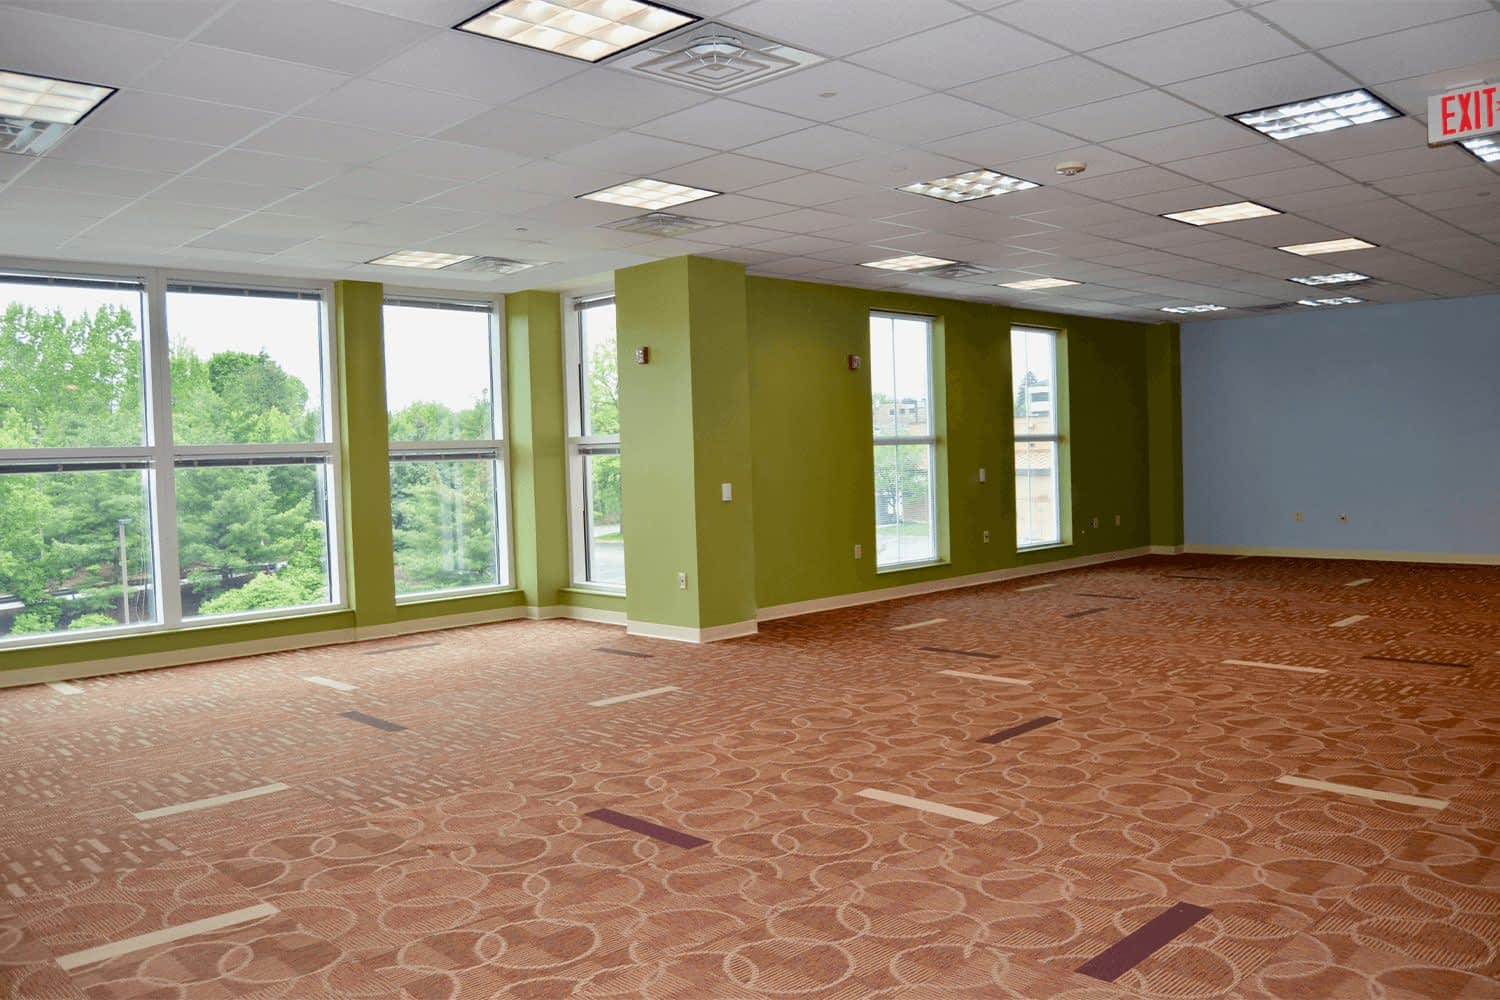 Large office space with bright green and blue walls and large windows